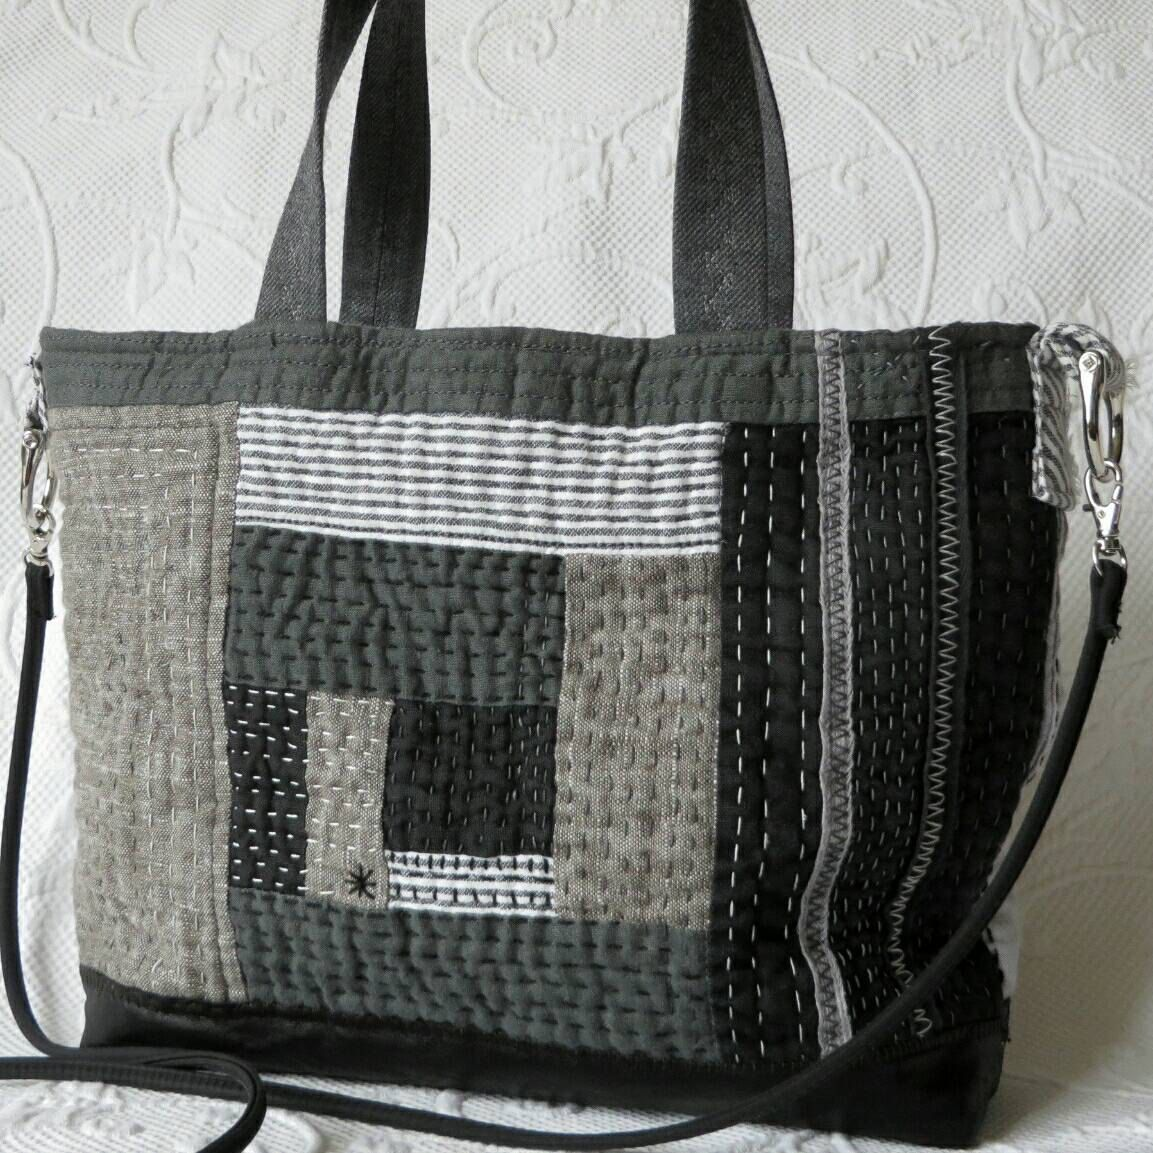 Black Hand Quilted Purse Sashiko Log Cabin Quilt Linen Leather Handbag By Hobbshillquilts On Etsy